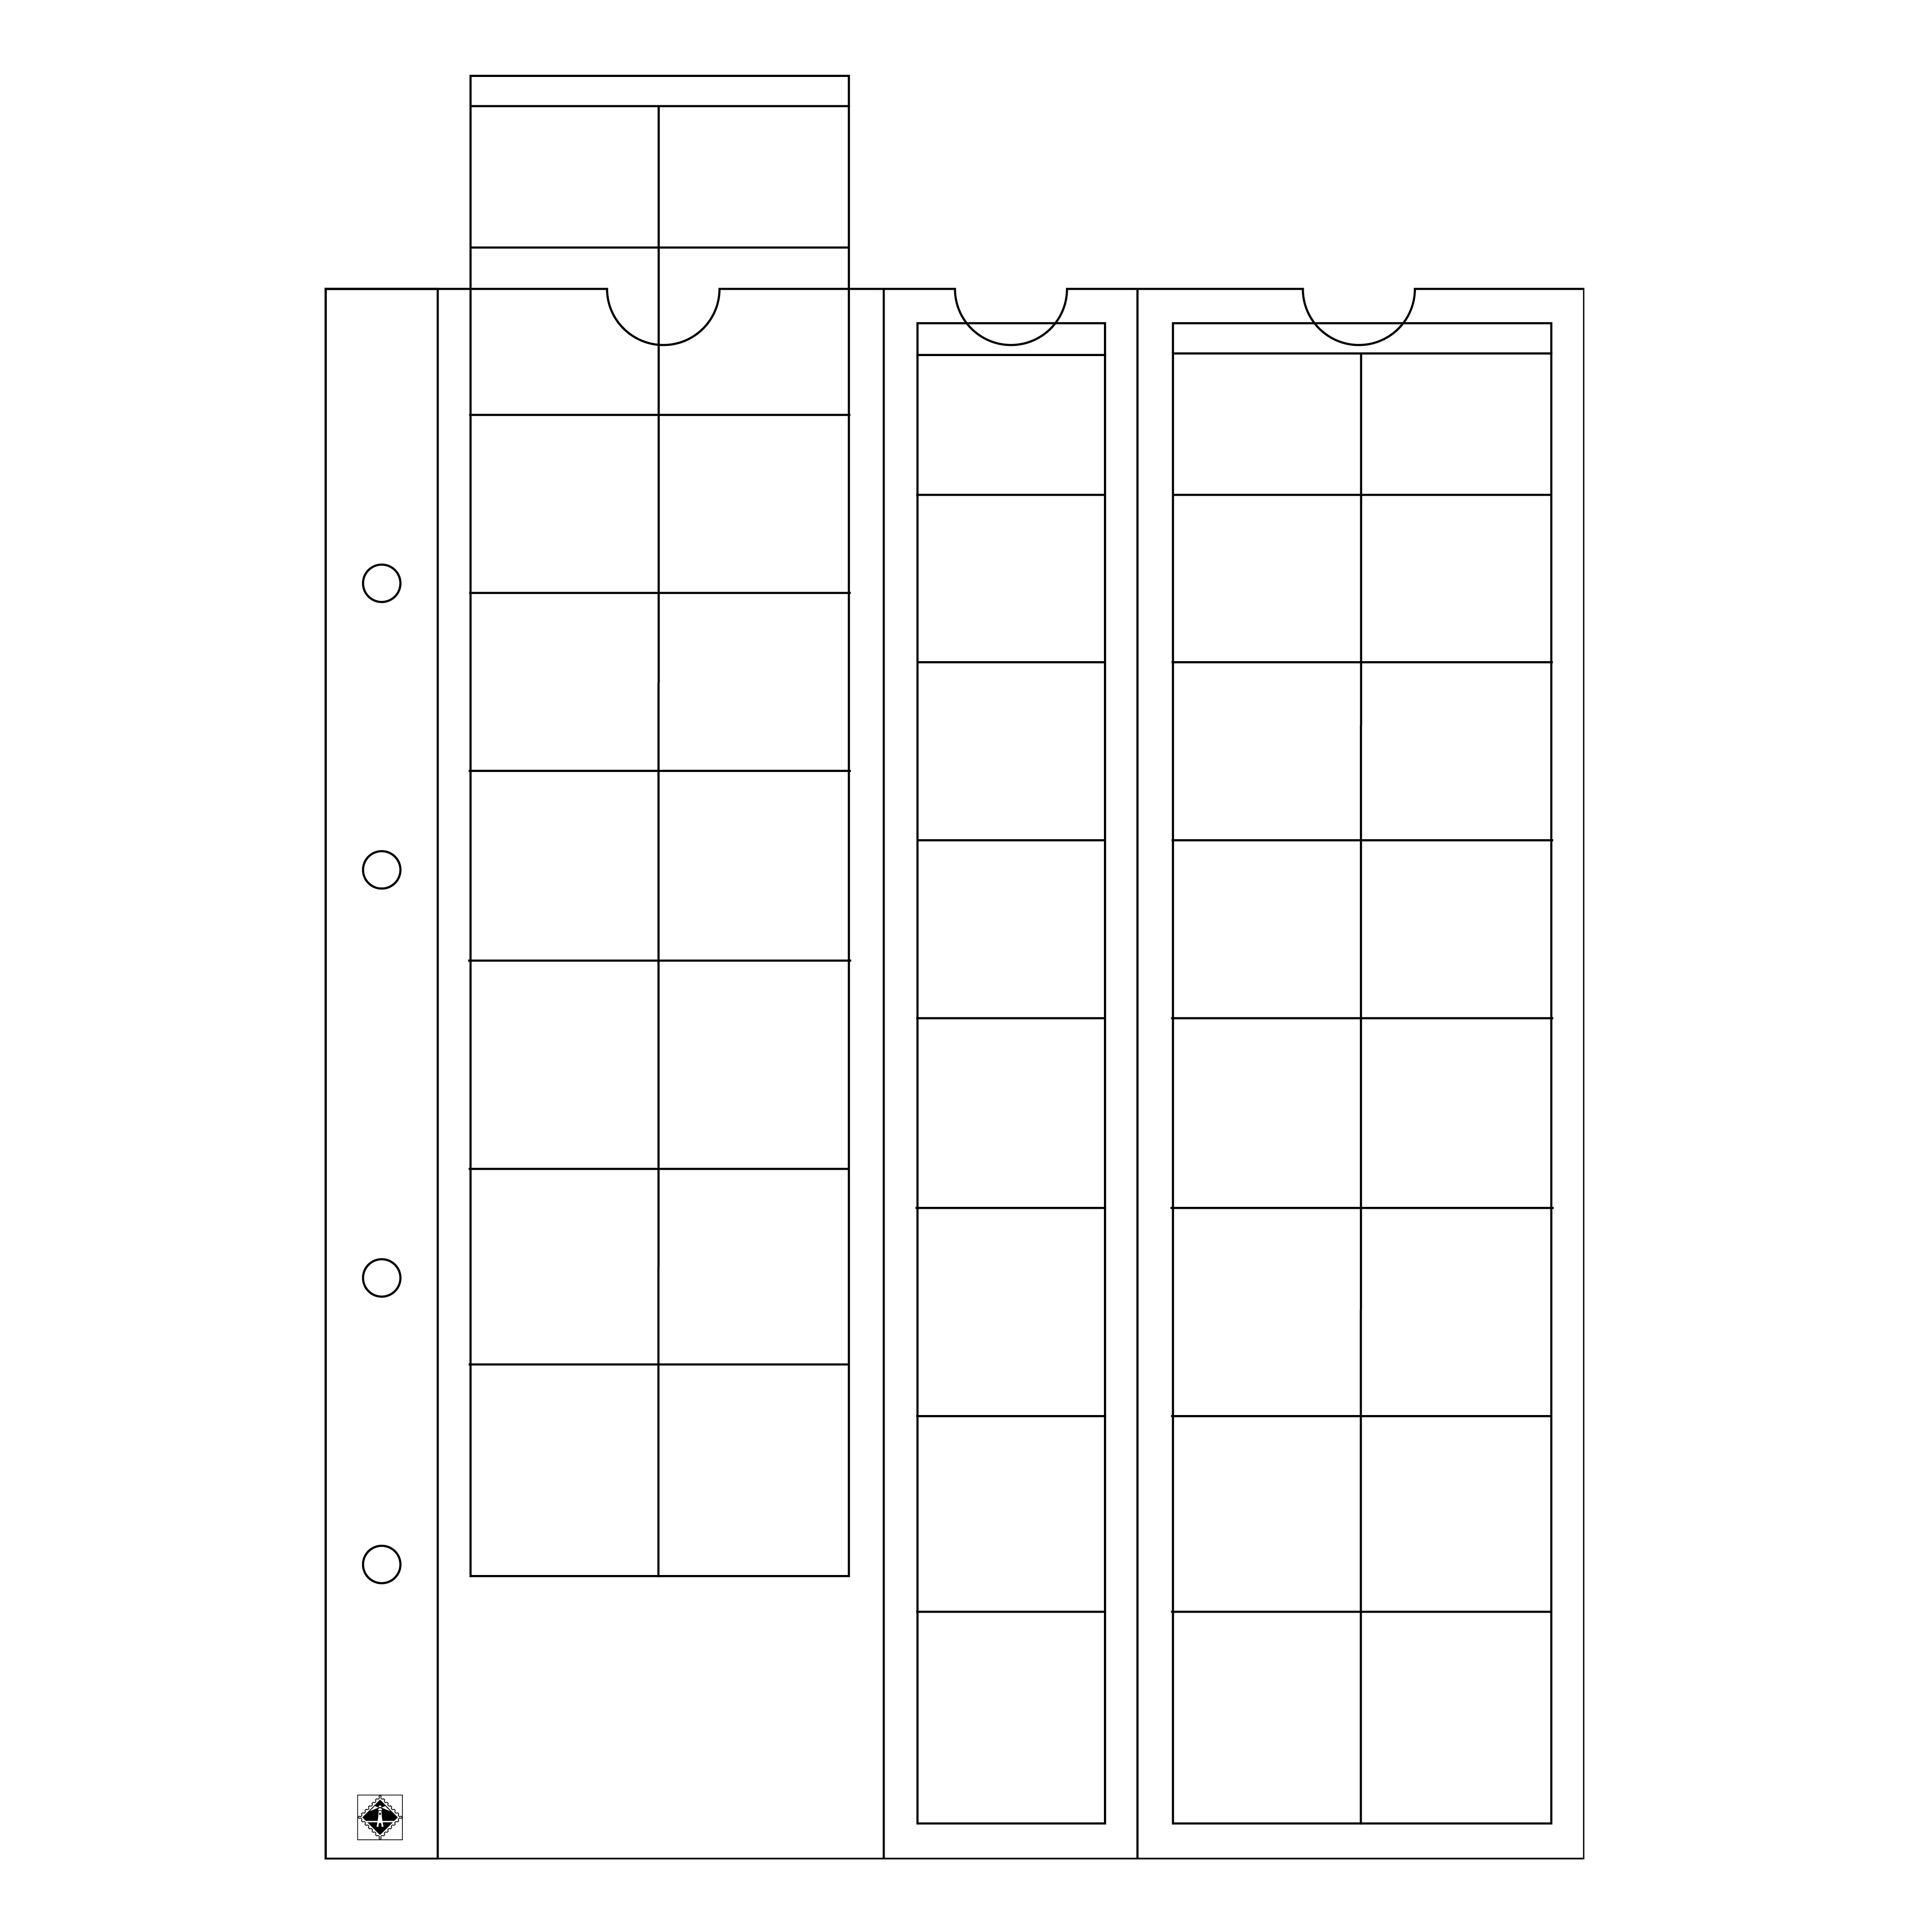 coin-sheets-optima-for-euro-sets-up-to-26-mm-o-clear